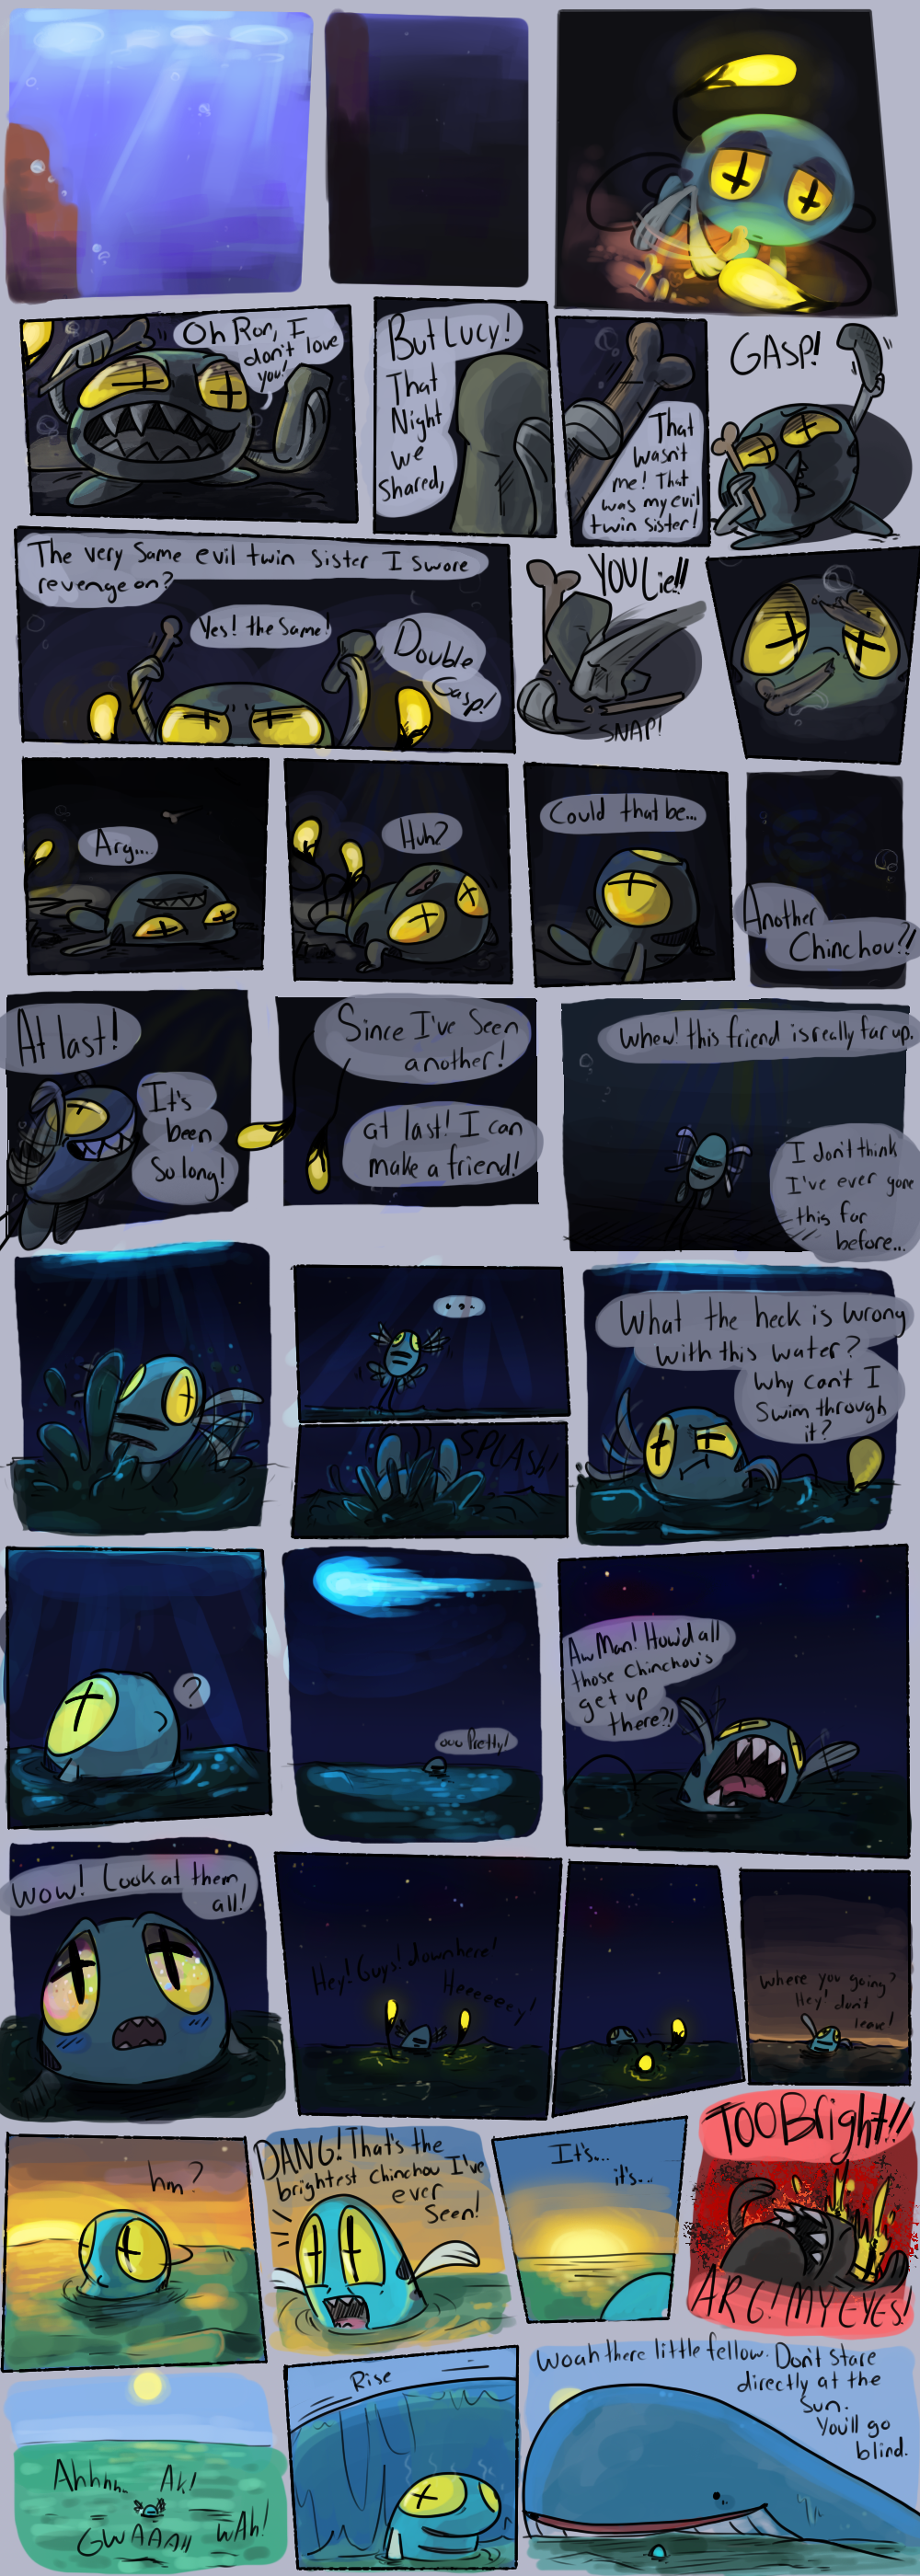 Cetus's Tail page 1 by CrazyIguana